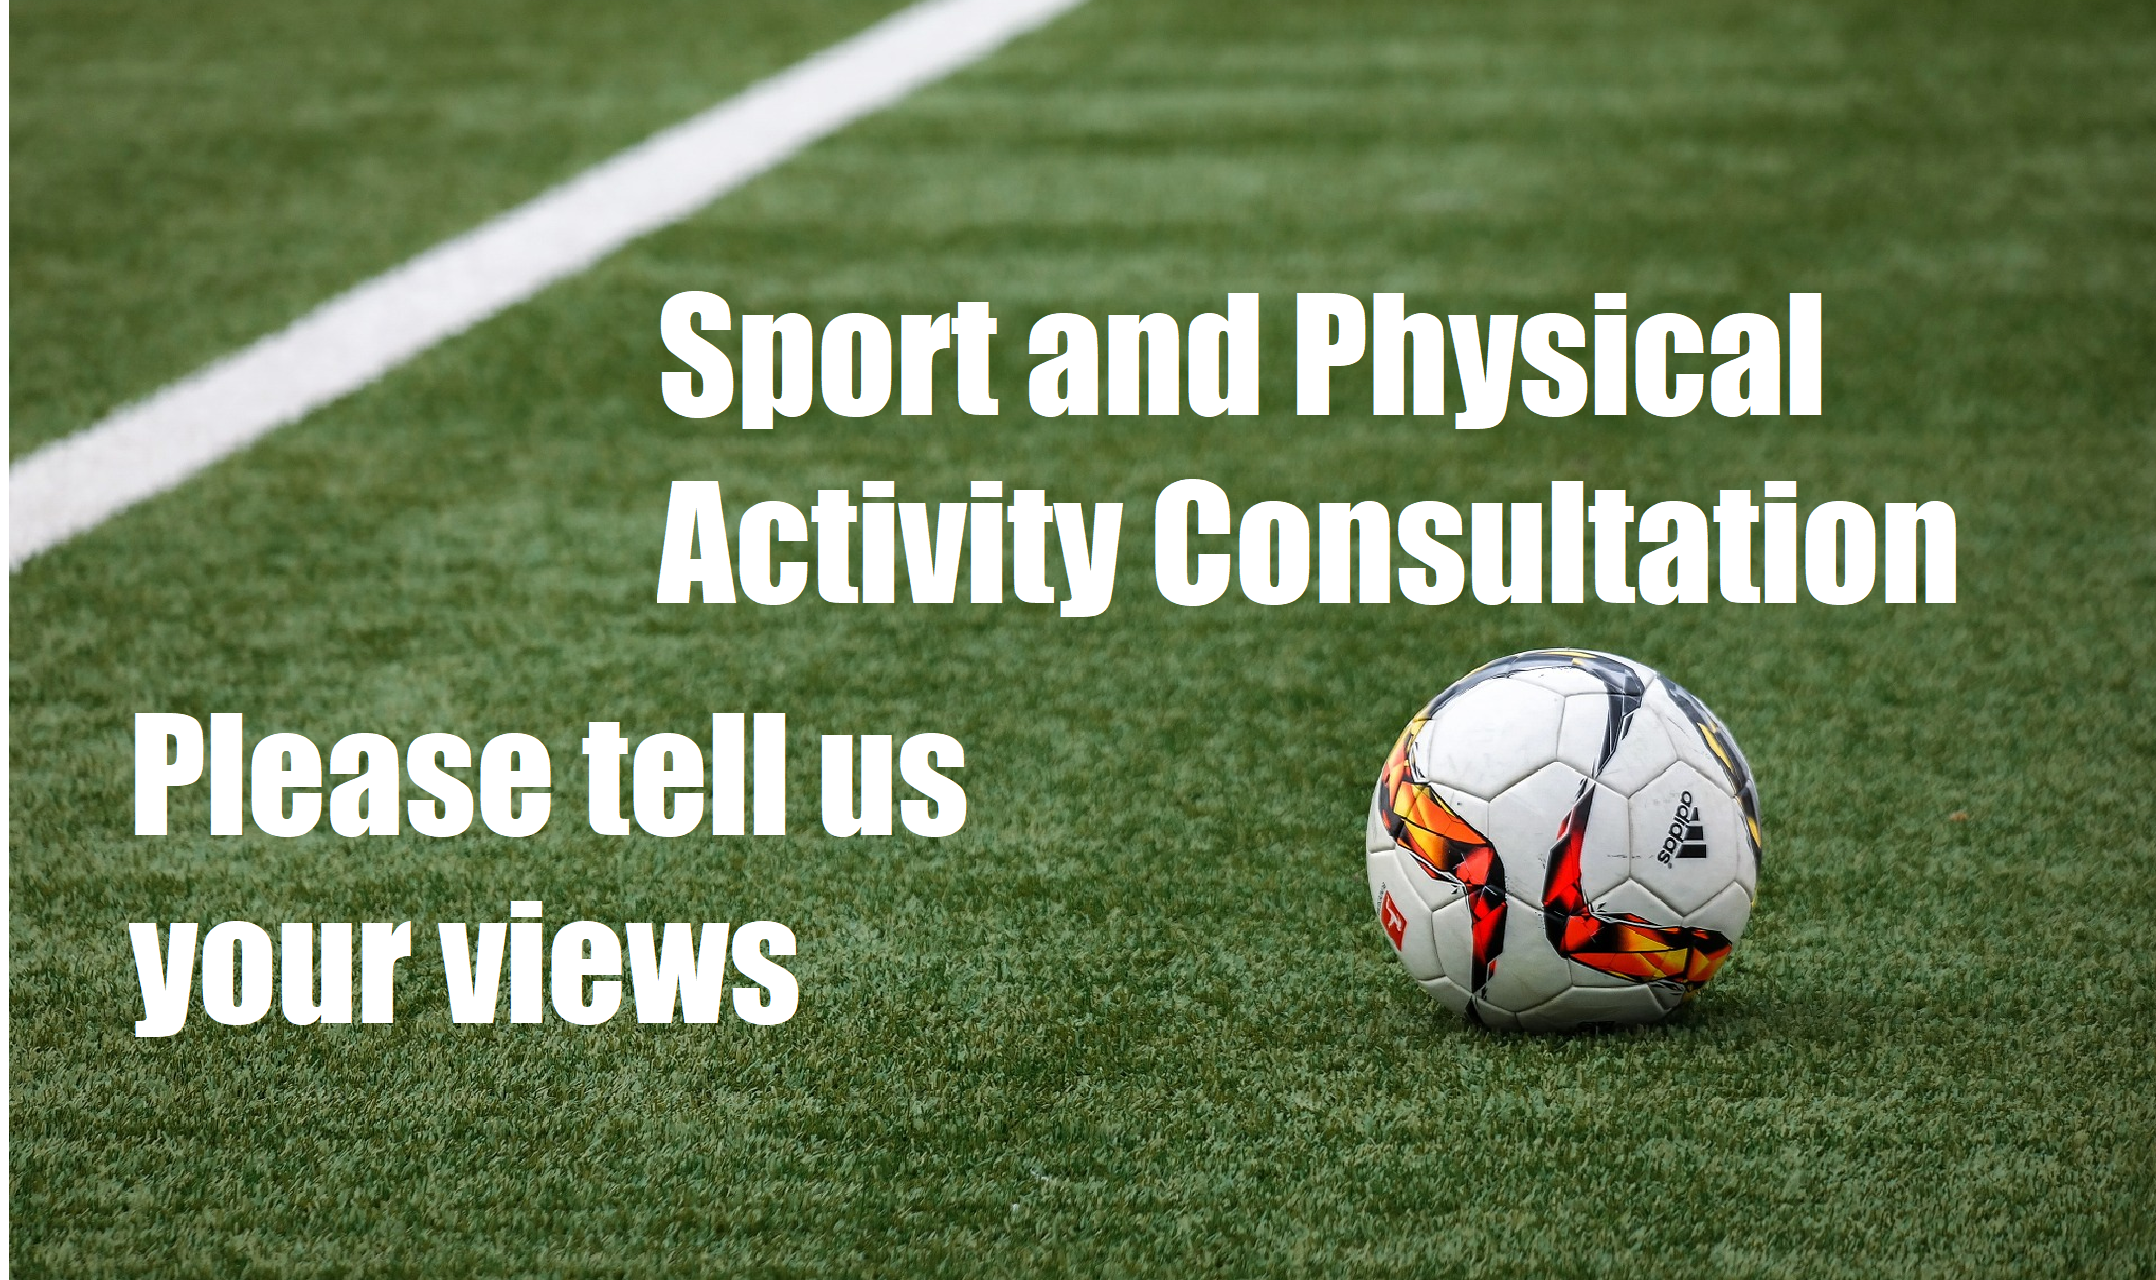 Physical Activity and Healthy Lifestyle Strategy – Please help us by giving us your views